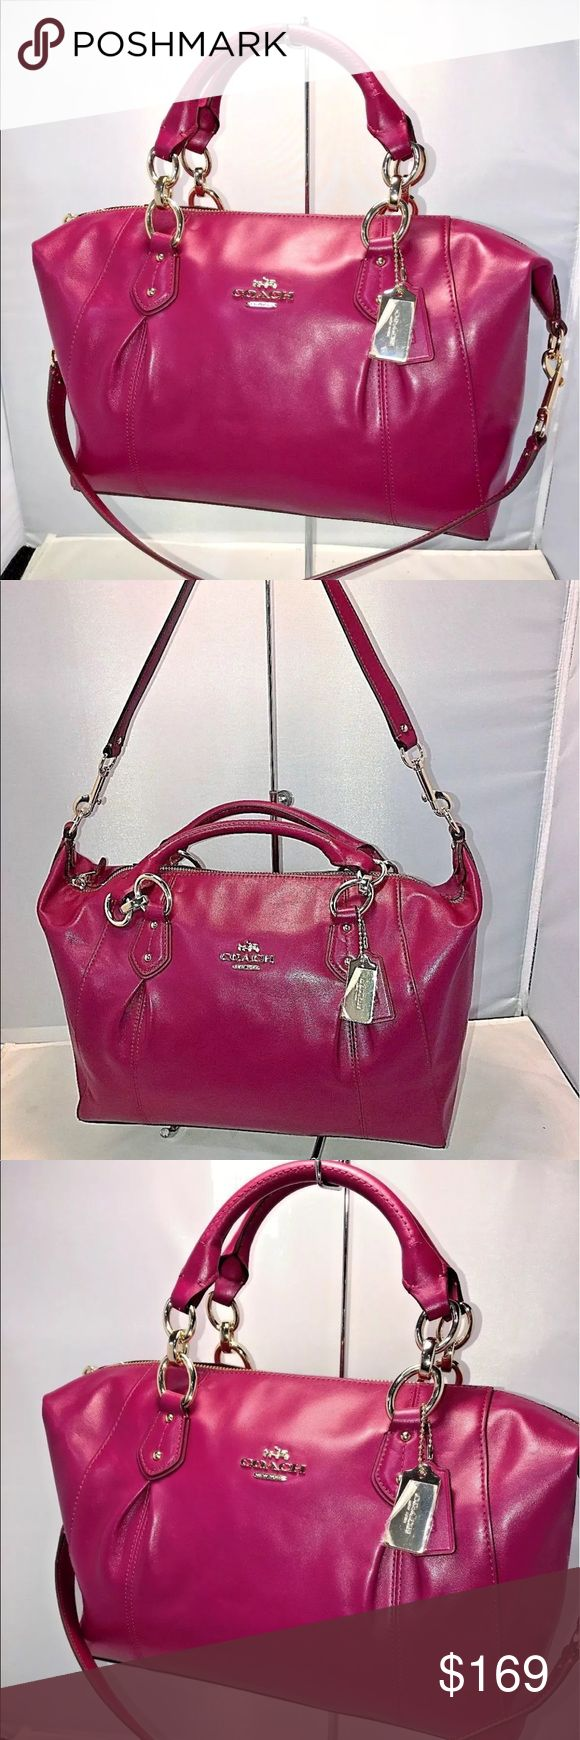 """Coach Collette Convertible Satchel in Fuchsia New Coach 58410E Colette Convertible Satchel in Smooth Coated Leather Fuchsia, Msrp $450.00 Dust bag and gift receipt included.  Smooth Coated leather  Semi Slouchy Silhouette  Gold Tone Hardware  Size is a solid medium or a small large.... very roomy  Inside zip, cell phone and multifunction pockets  Zip-top closure, fabric lining  Handles with 5 1/2"""" drop  Longer strap with 11 1/2"""" drop for shoulder wear  12"""" bottom - 14"""" top (L) x  9 1/2"""" (H)…"""